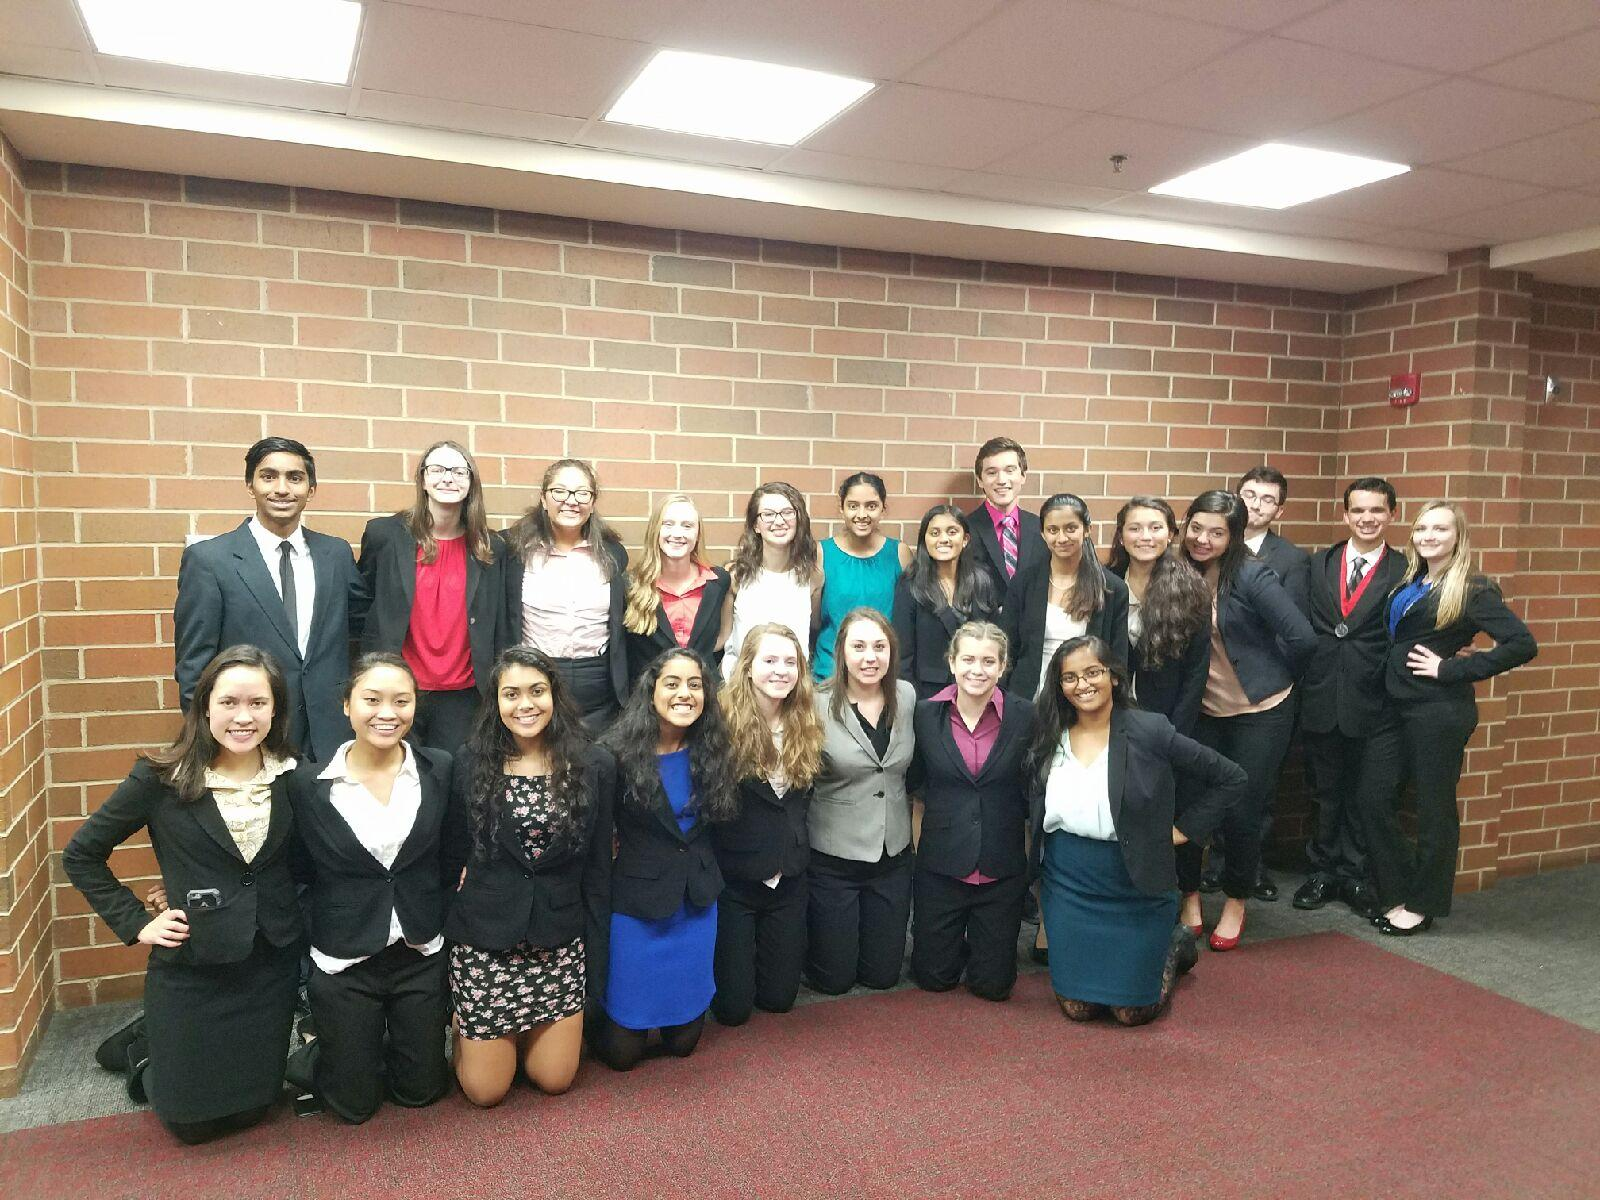 Speech team members pose after a successful tournament (F. Losbanes).